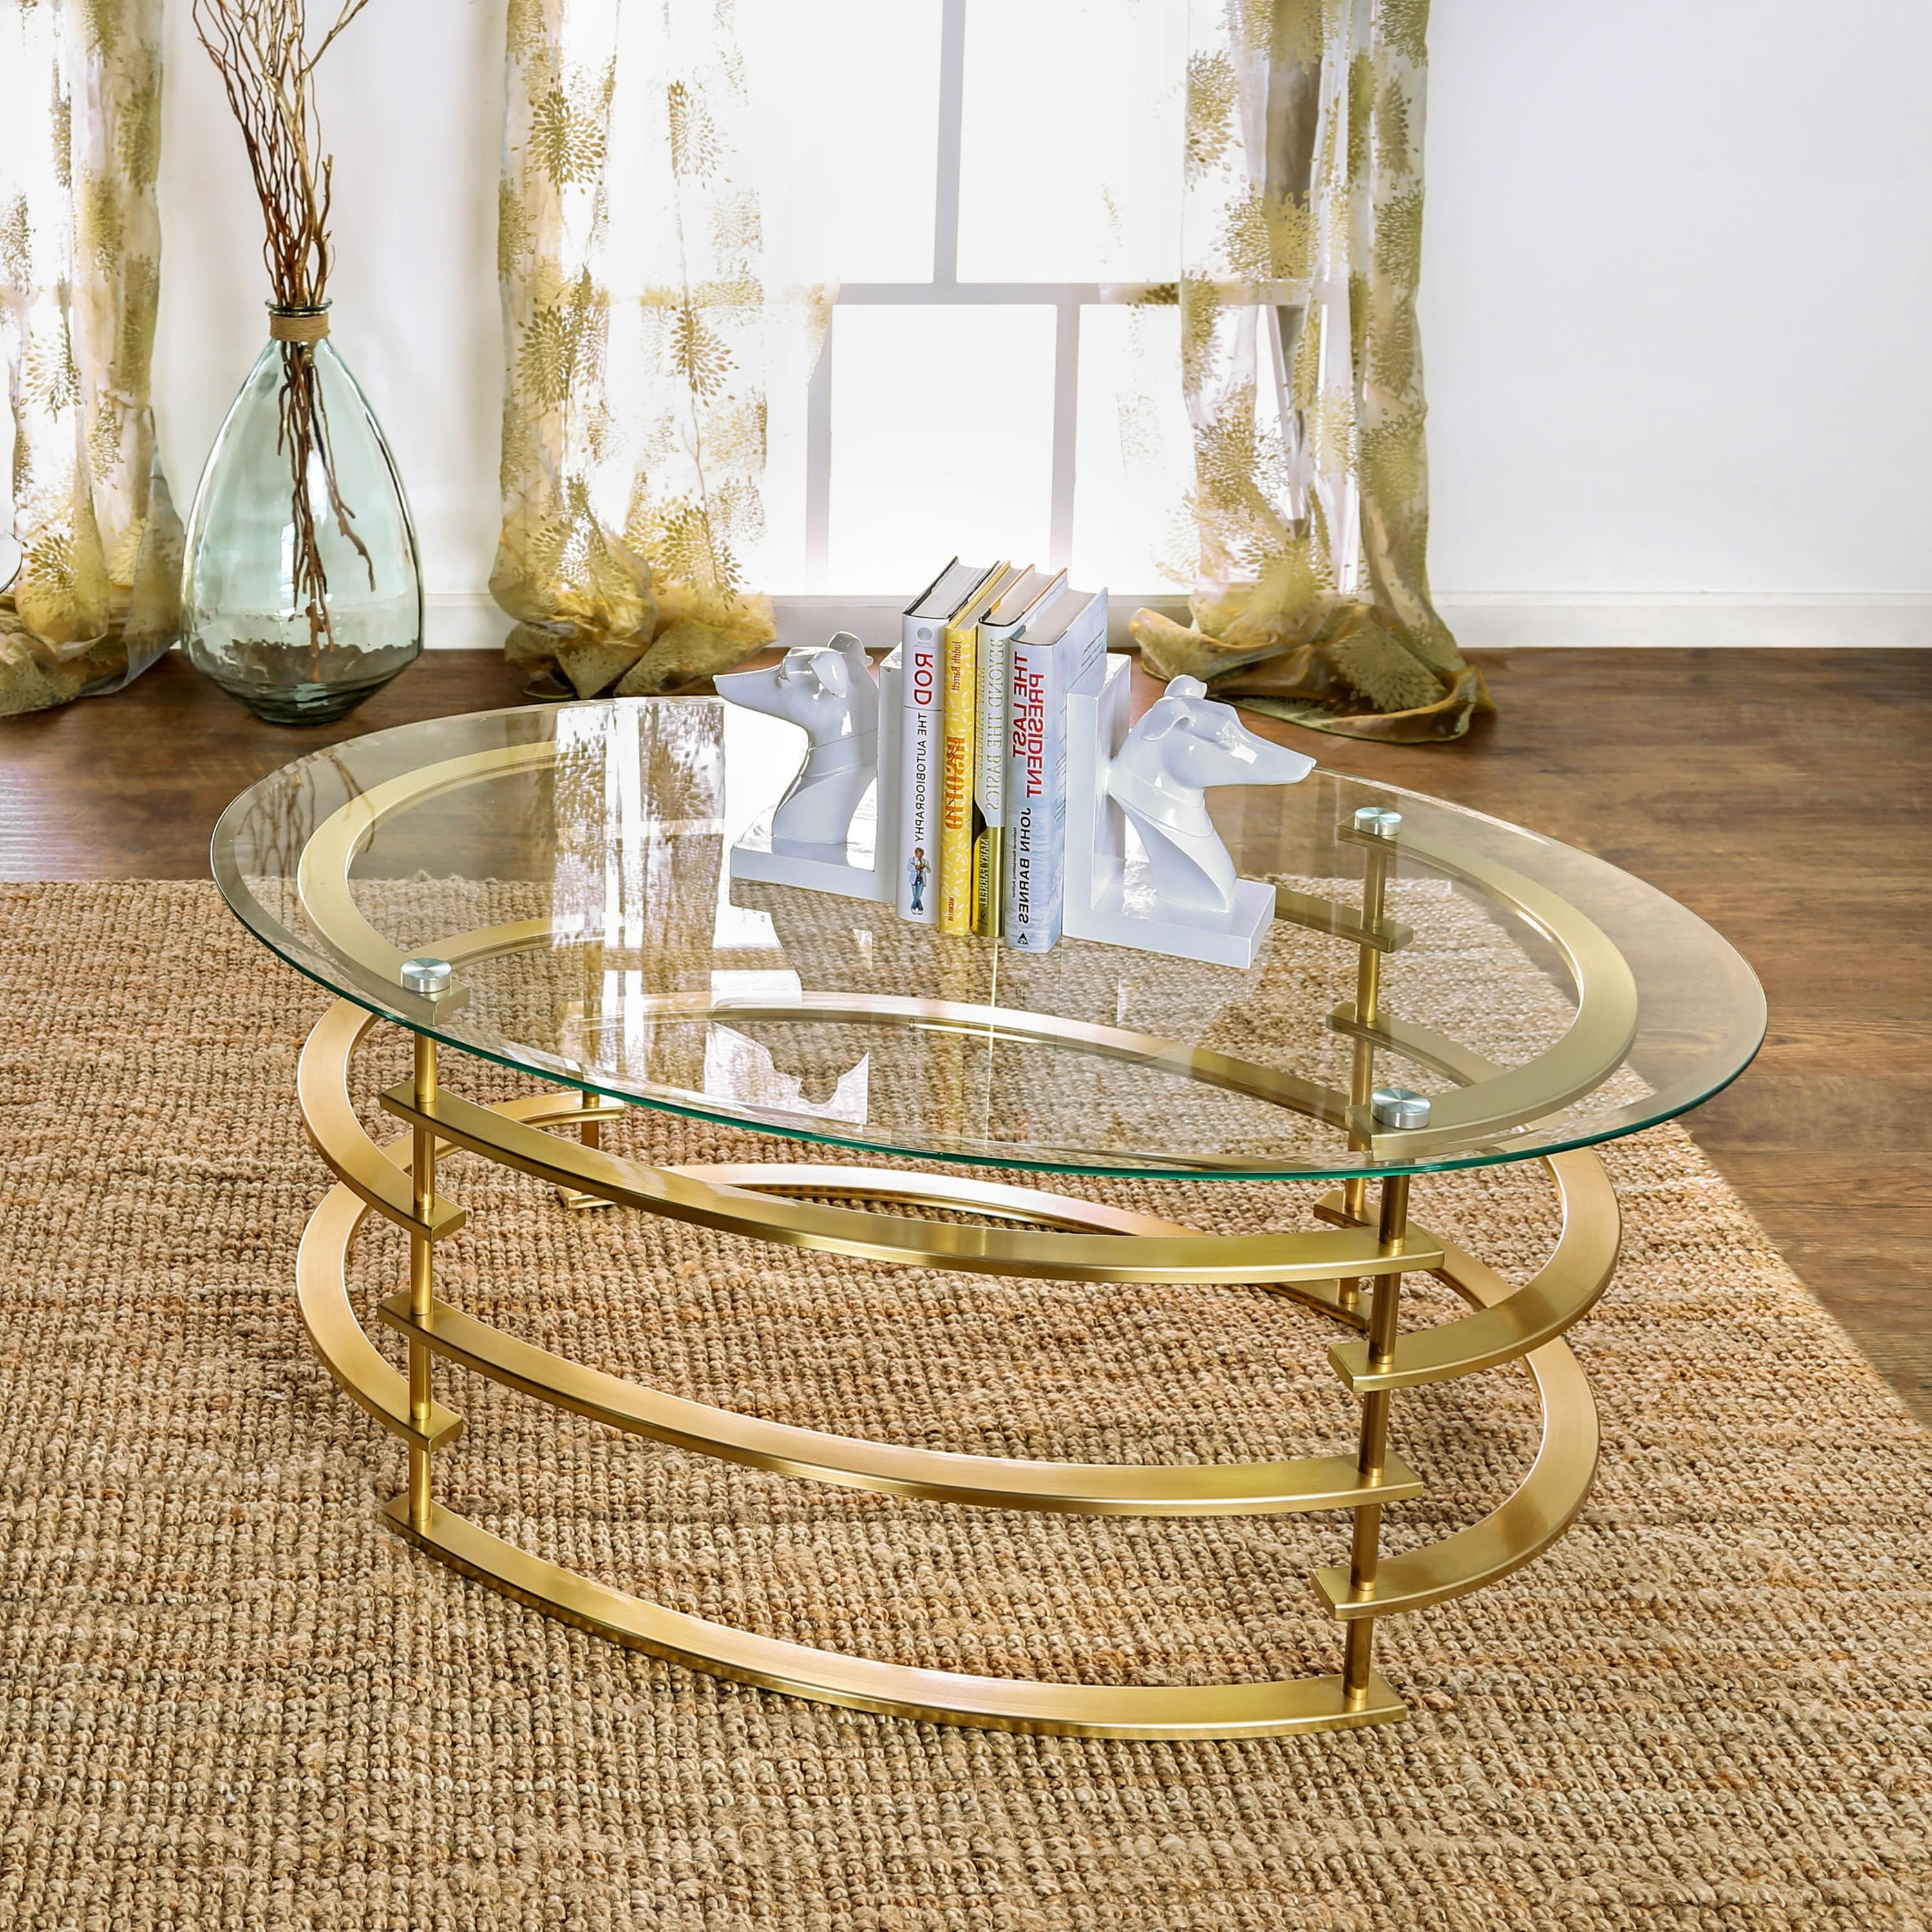 Silver Orchid Marcello Contemporary Glass Top Coffee Table Throughout 2020 Silver Orchid Ipsen Round Coffee Tables With X Base (View 14 of 20)